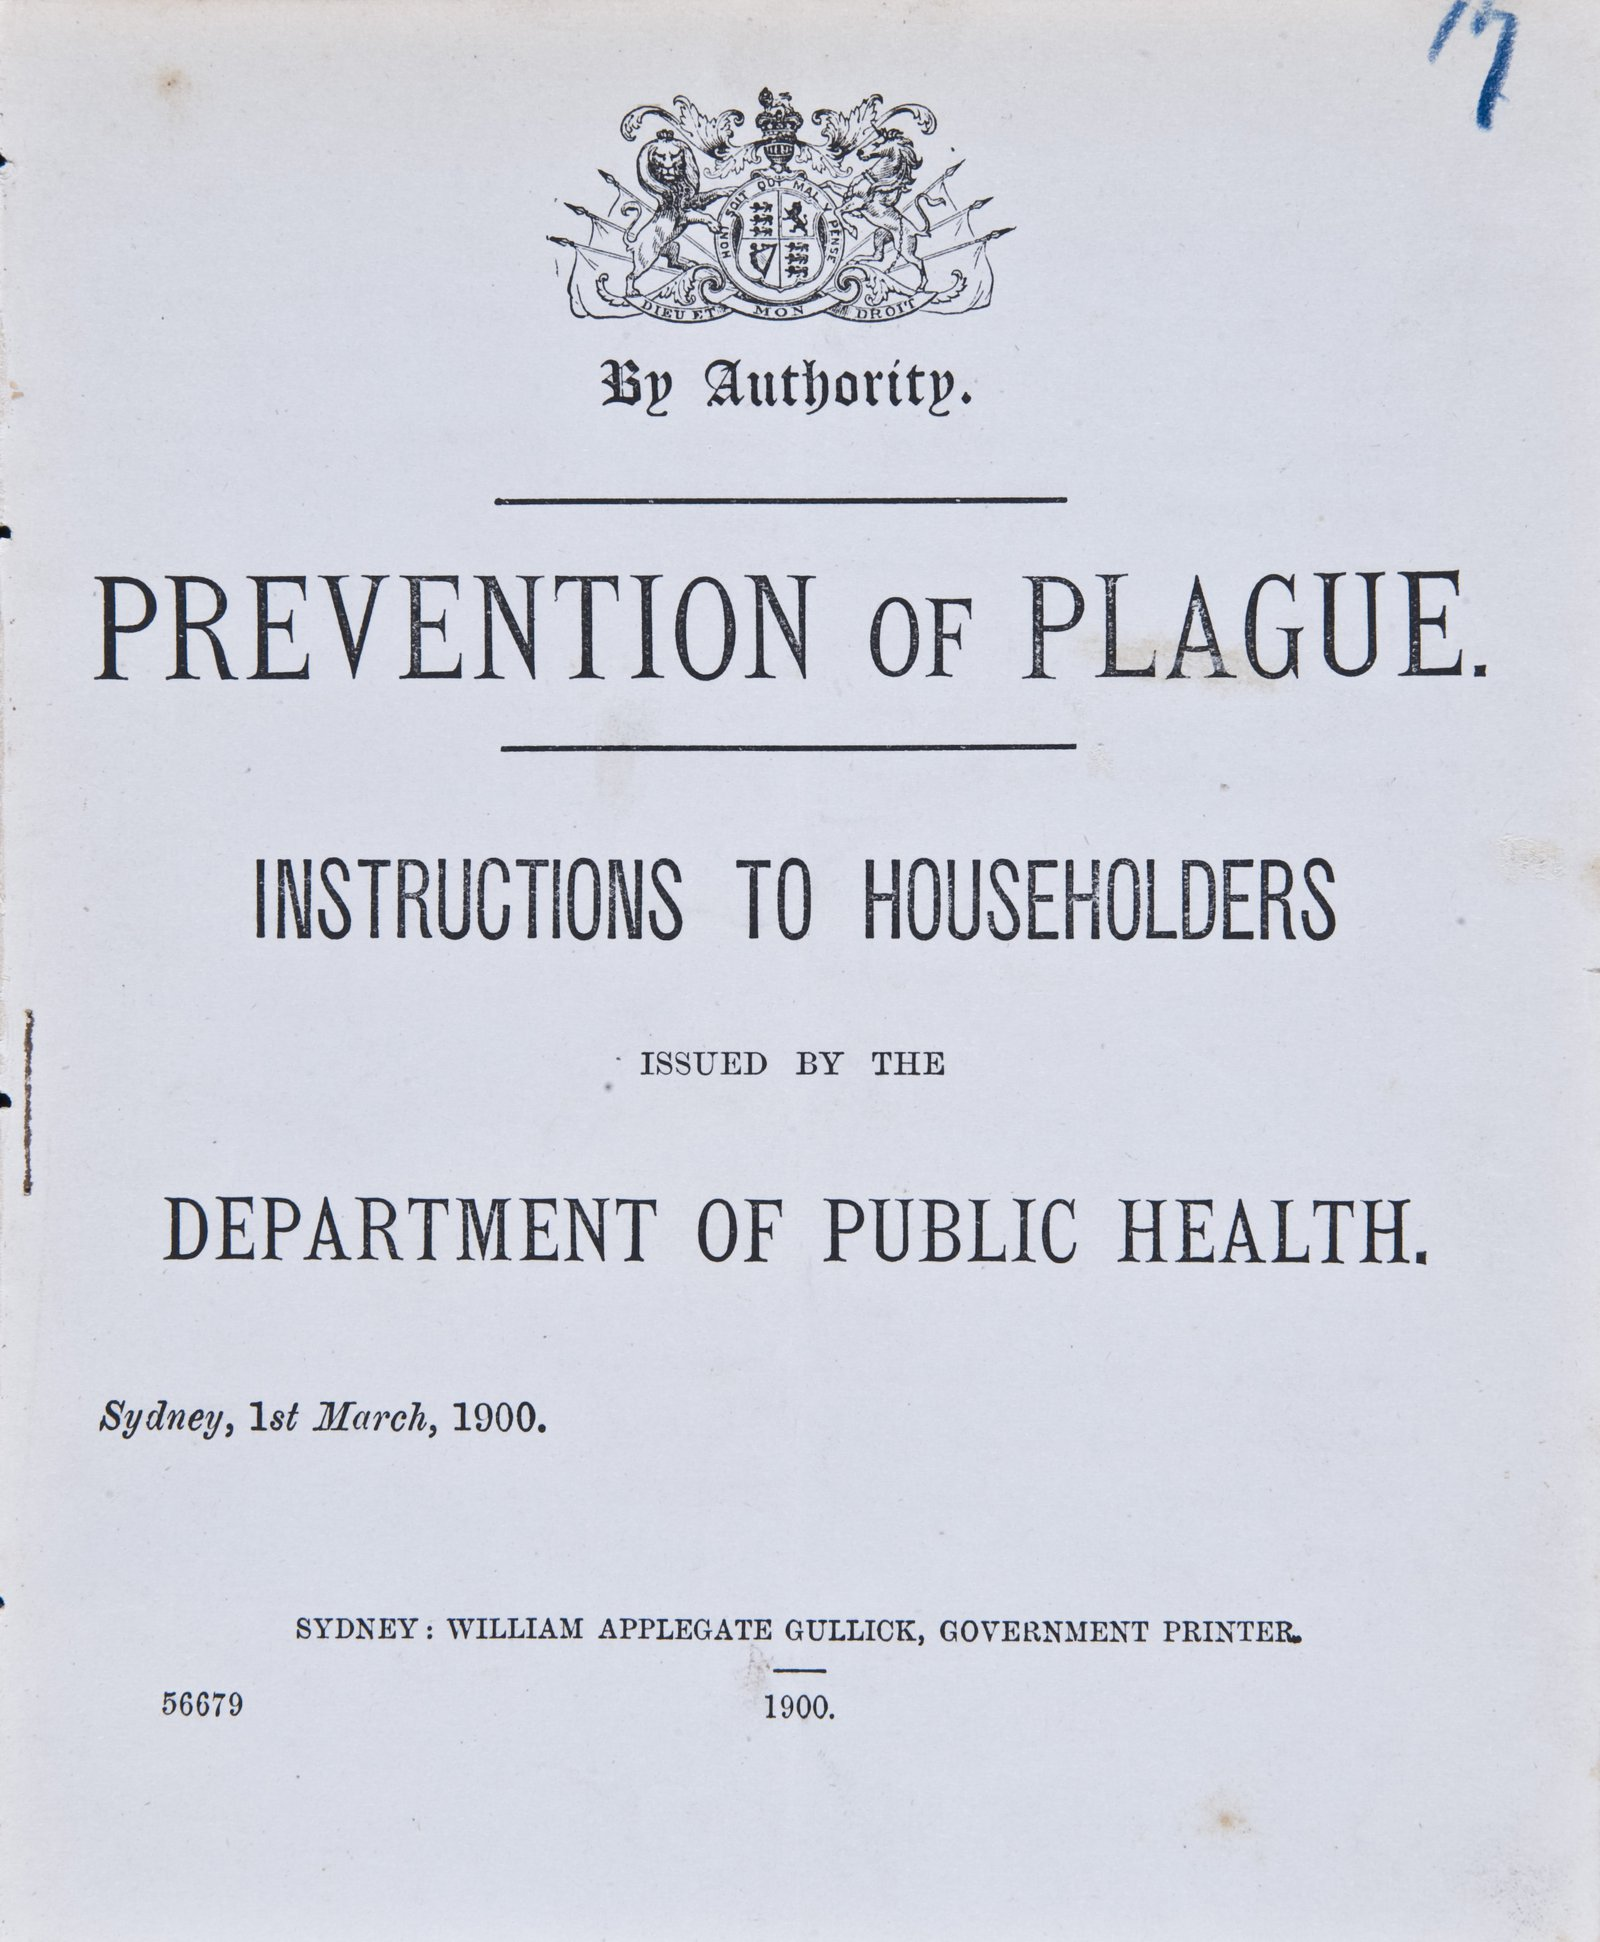 Prevention of Plague. Instructions to Householders - Page 1